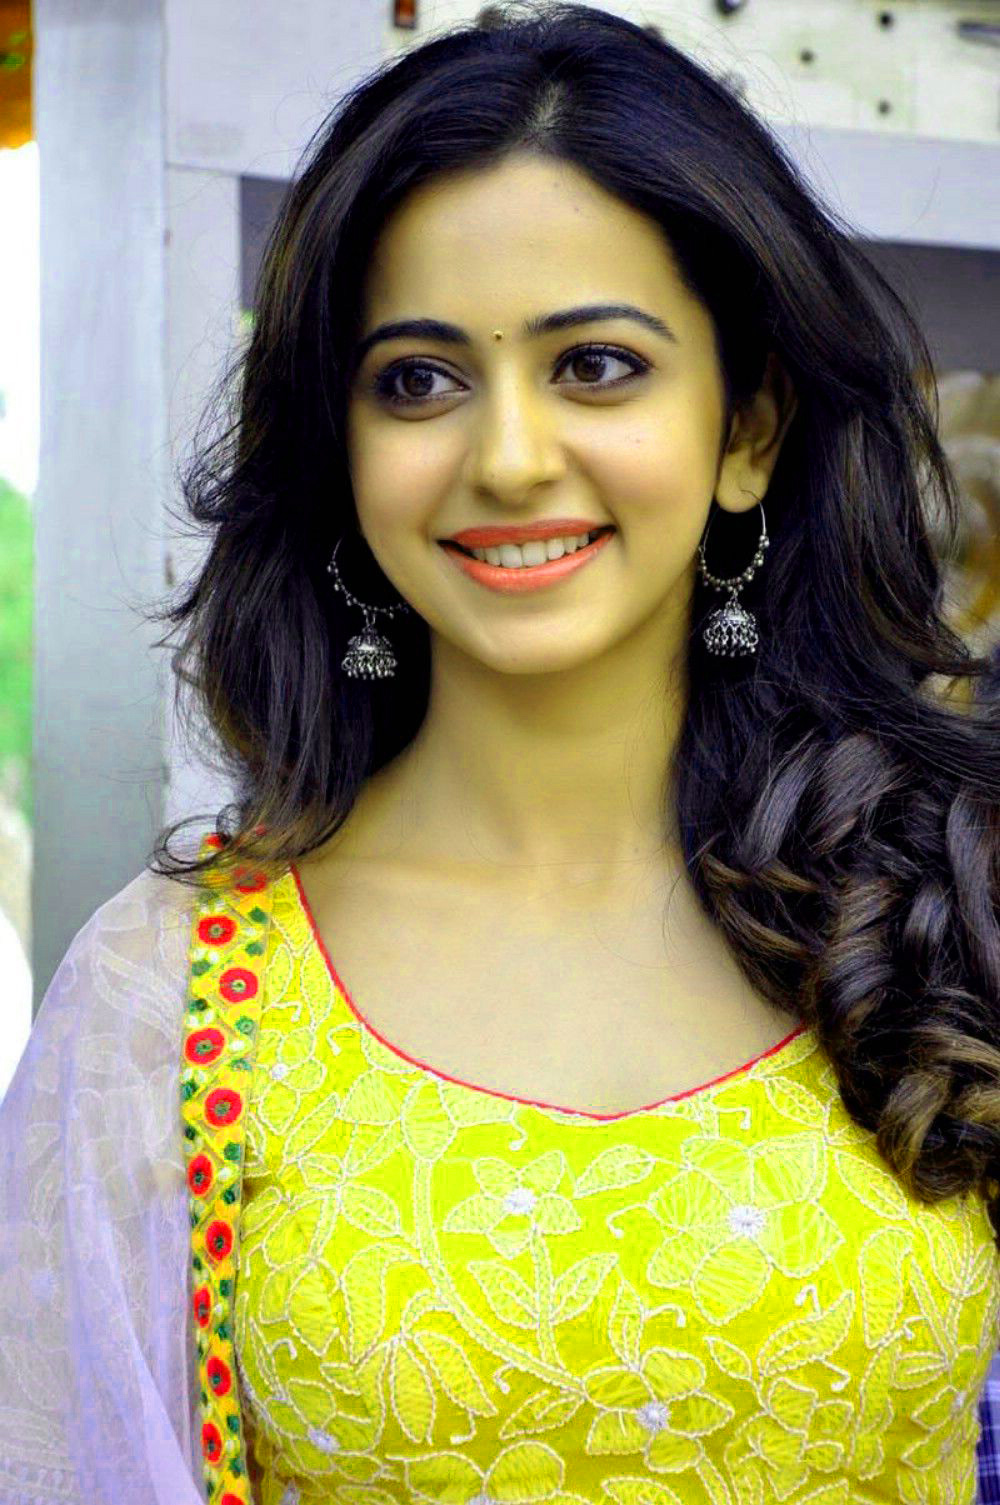 BEAUTIFUL HEROINE / ACTRESS IMAGES PICS WALLPAPER FREE FOR FACEBOOK